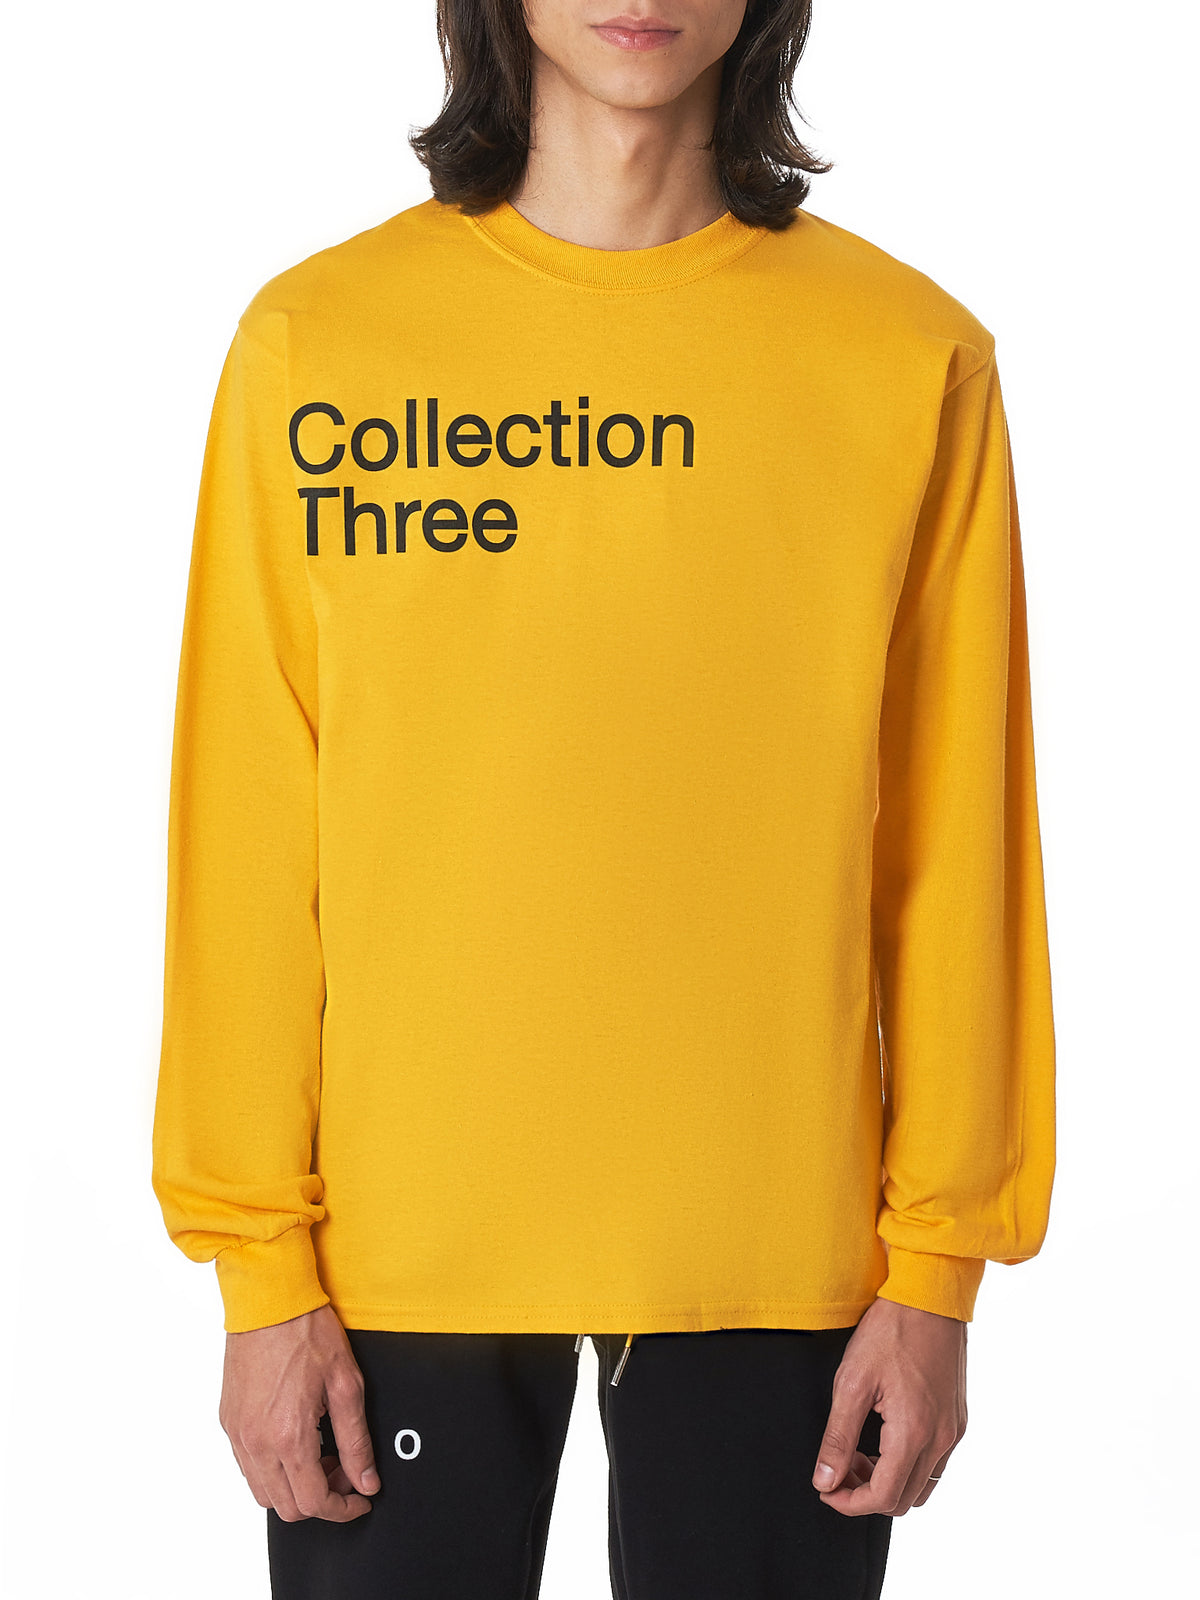 Geo 'Collection Three' Long-Sleeve Tee Shirt - Hlorenzo Front